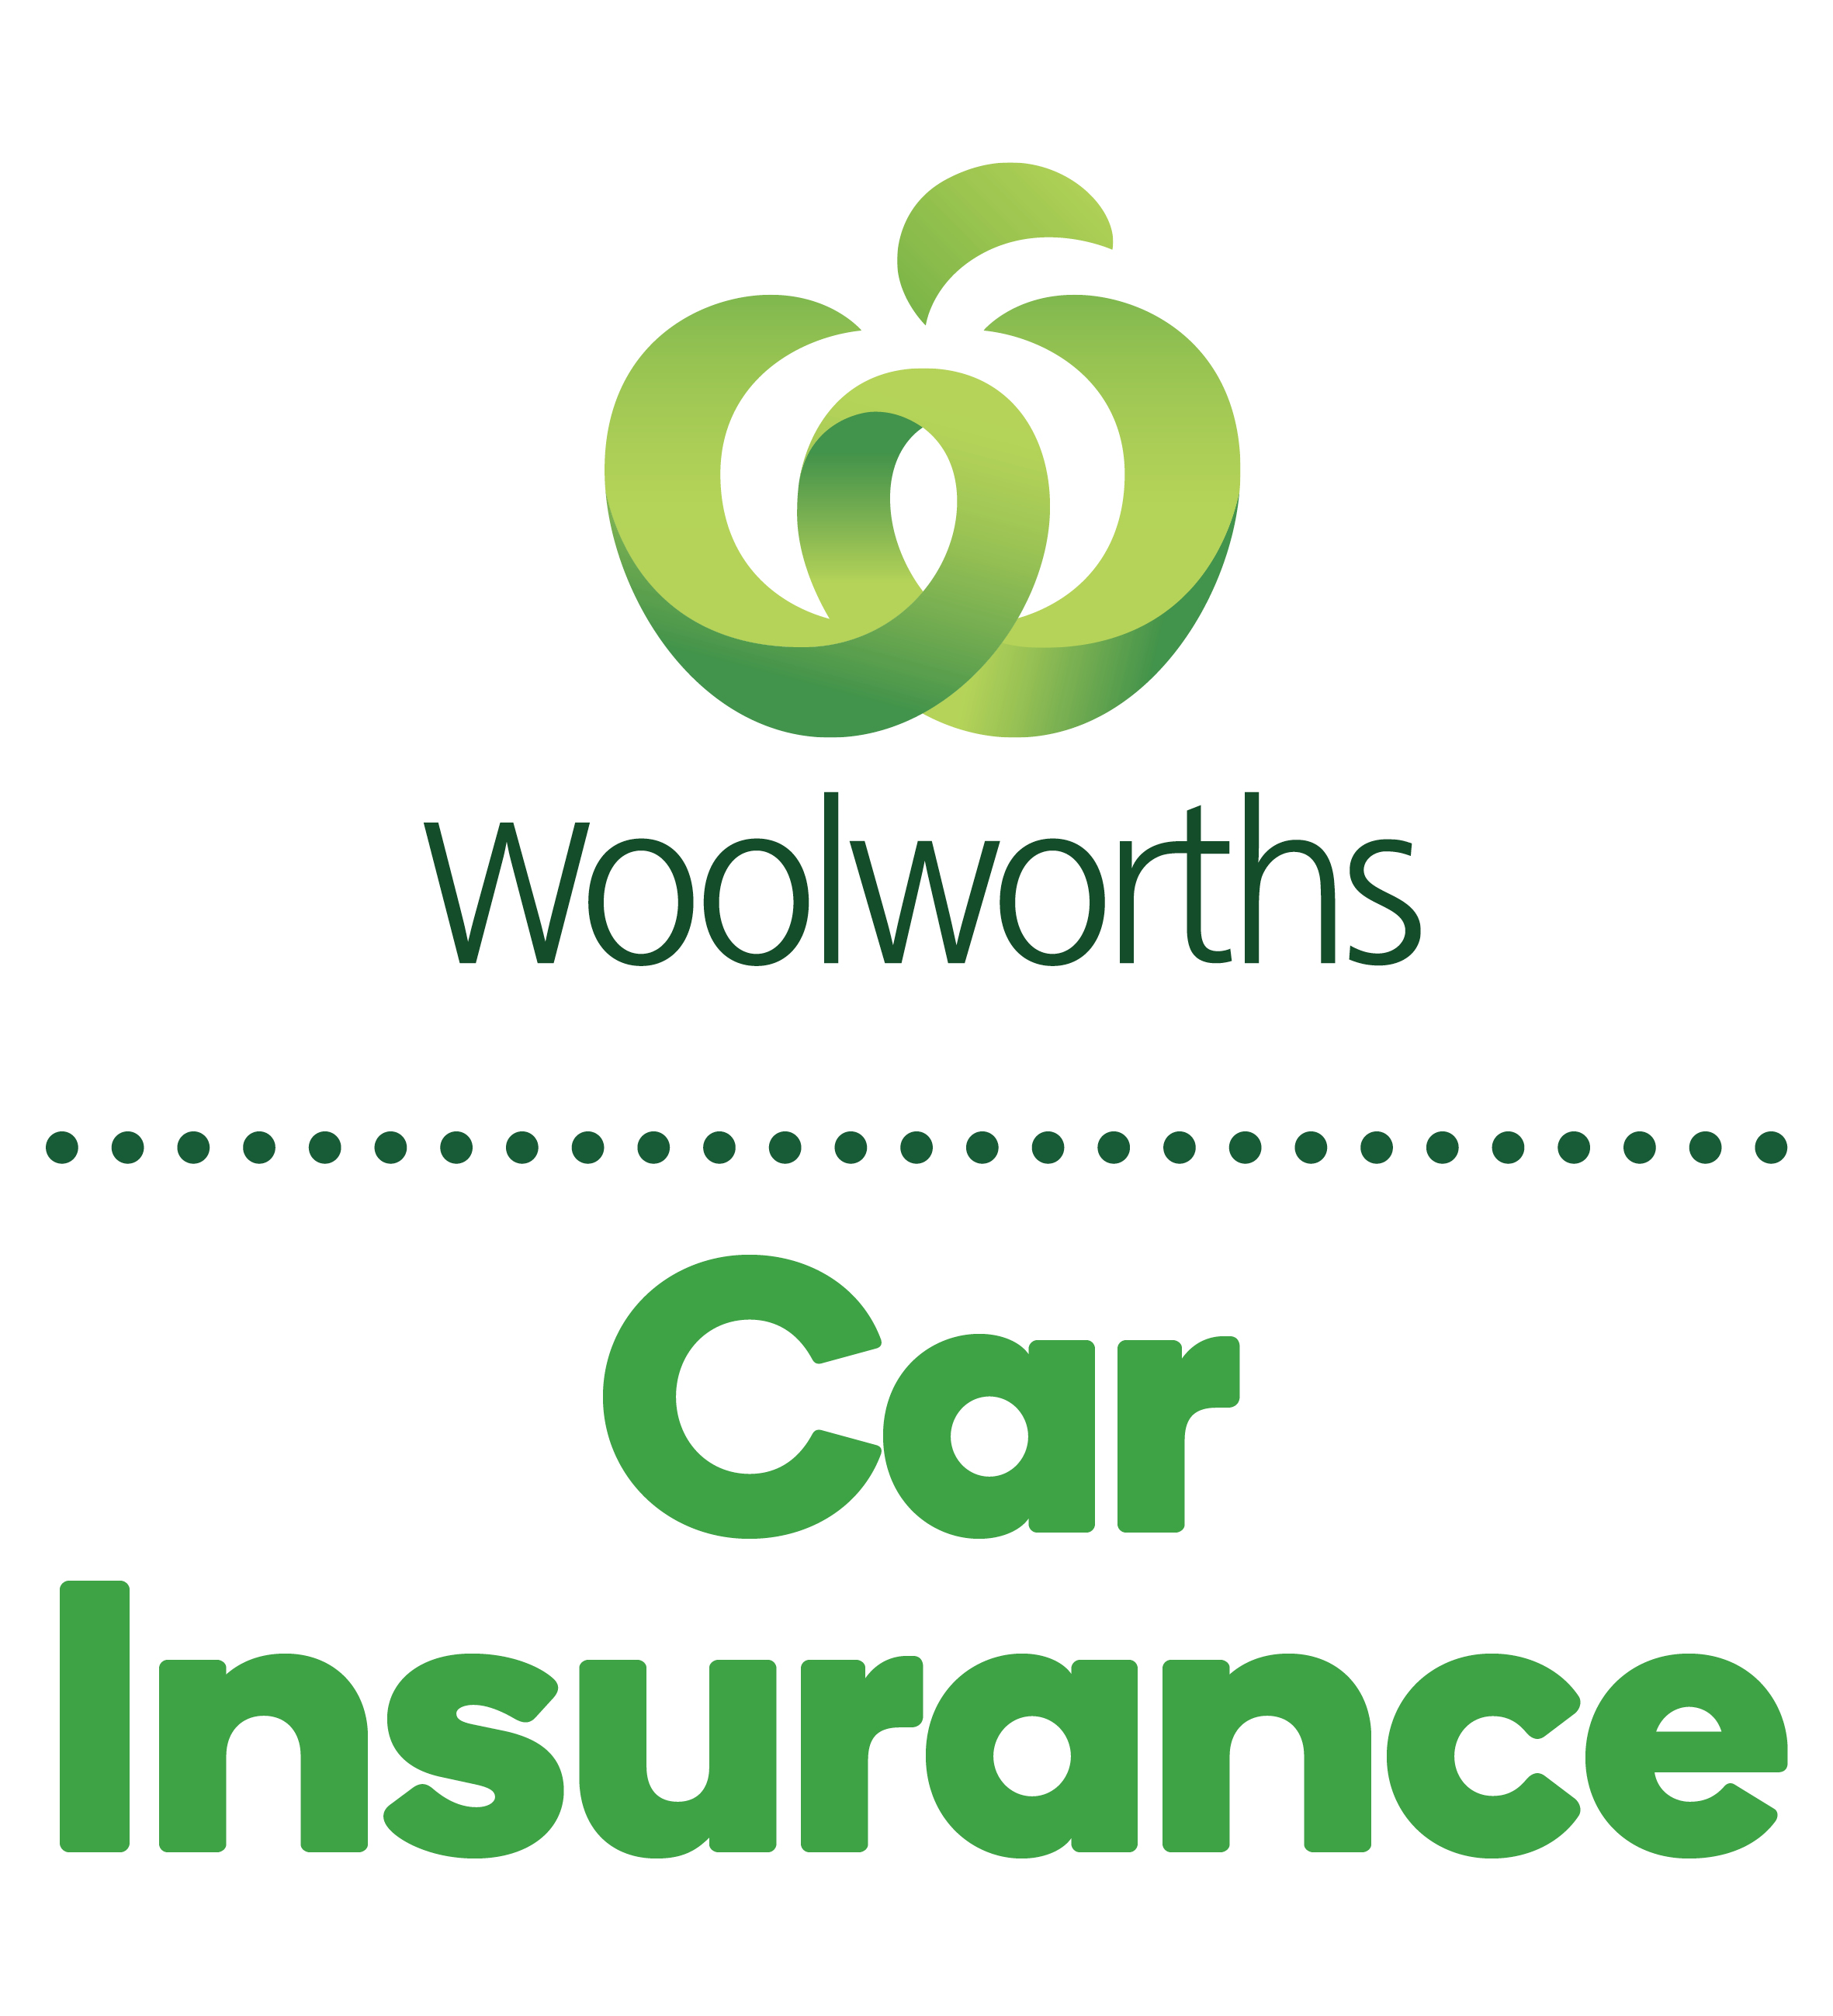 Woolworths Car Insurance Offer